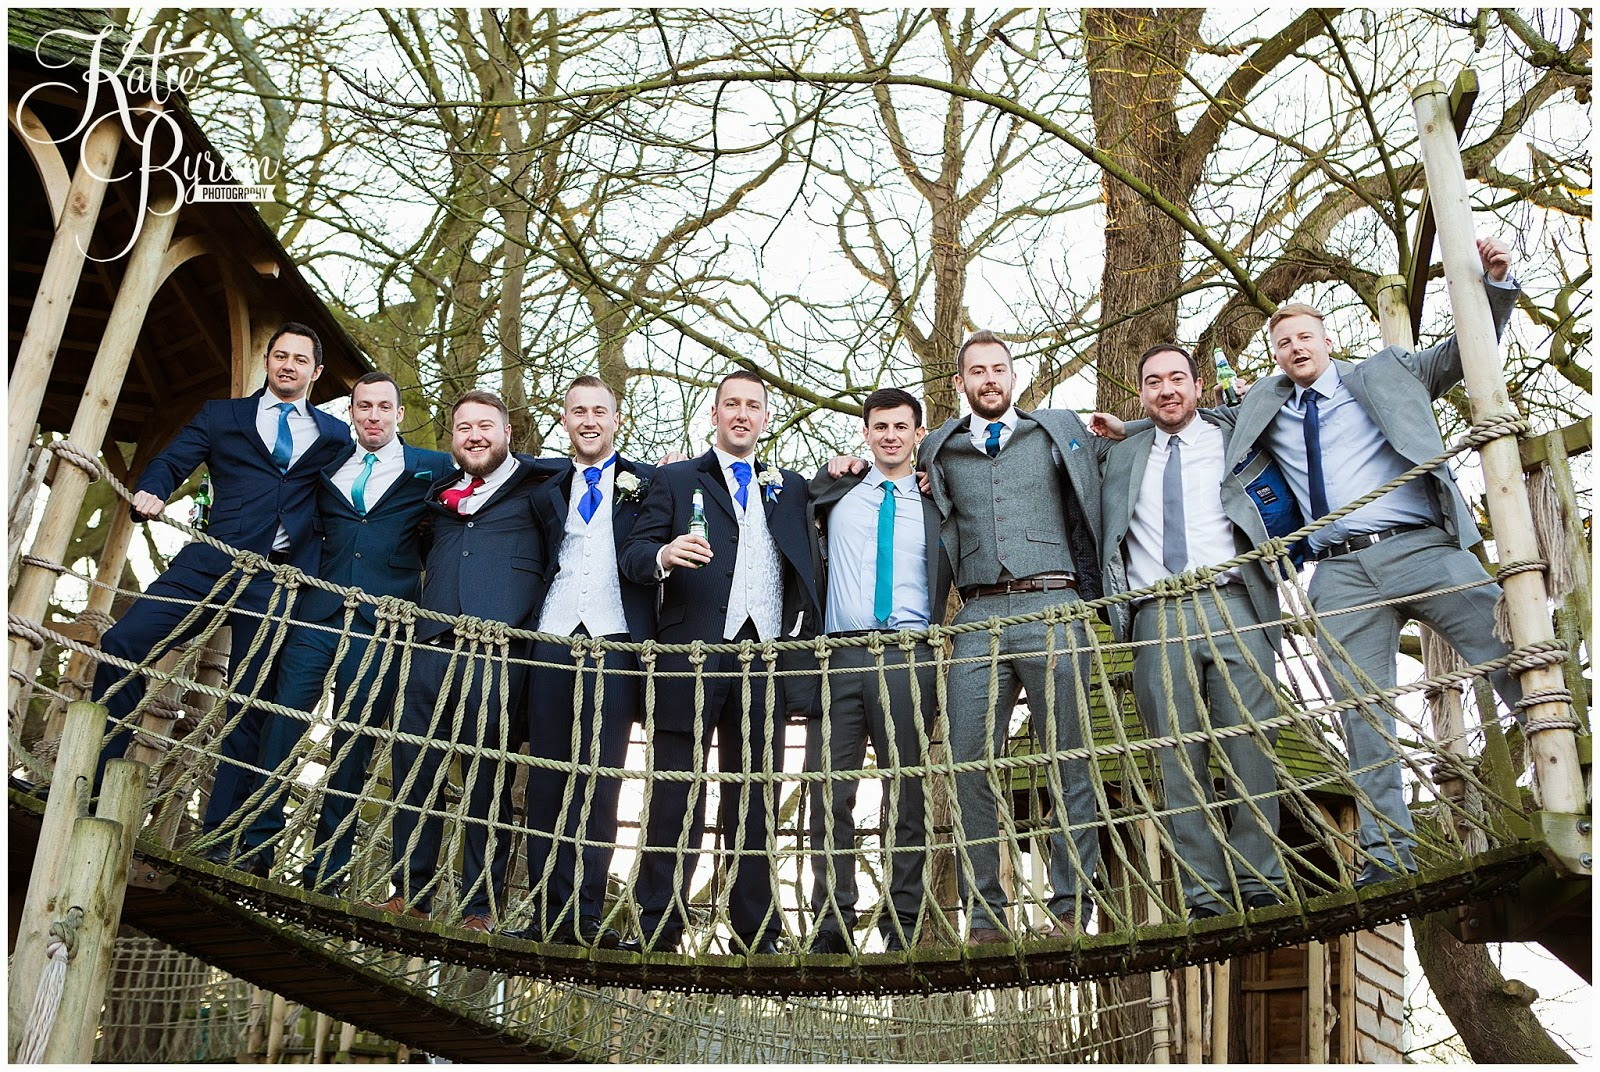 alnwick treehouse, ,  ellingham hall, ellingham hall wedding, katie byram photography, alnwick treehouse wedding, alnwick garden wedding, alnwick wedding,